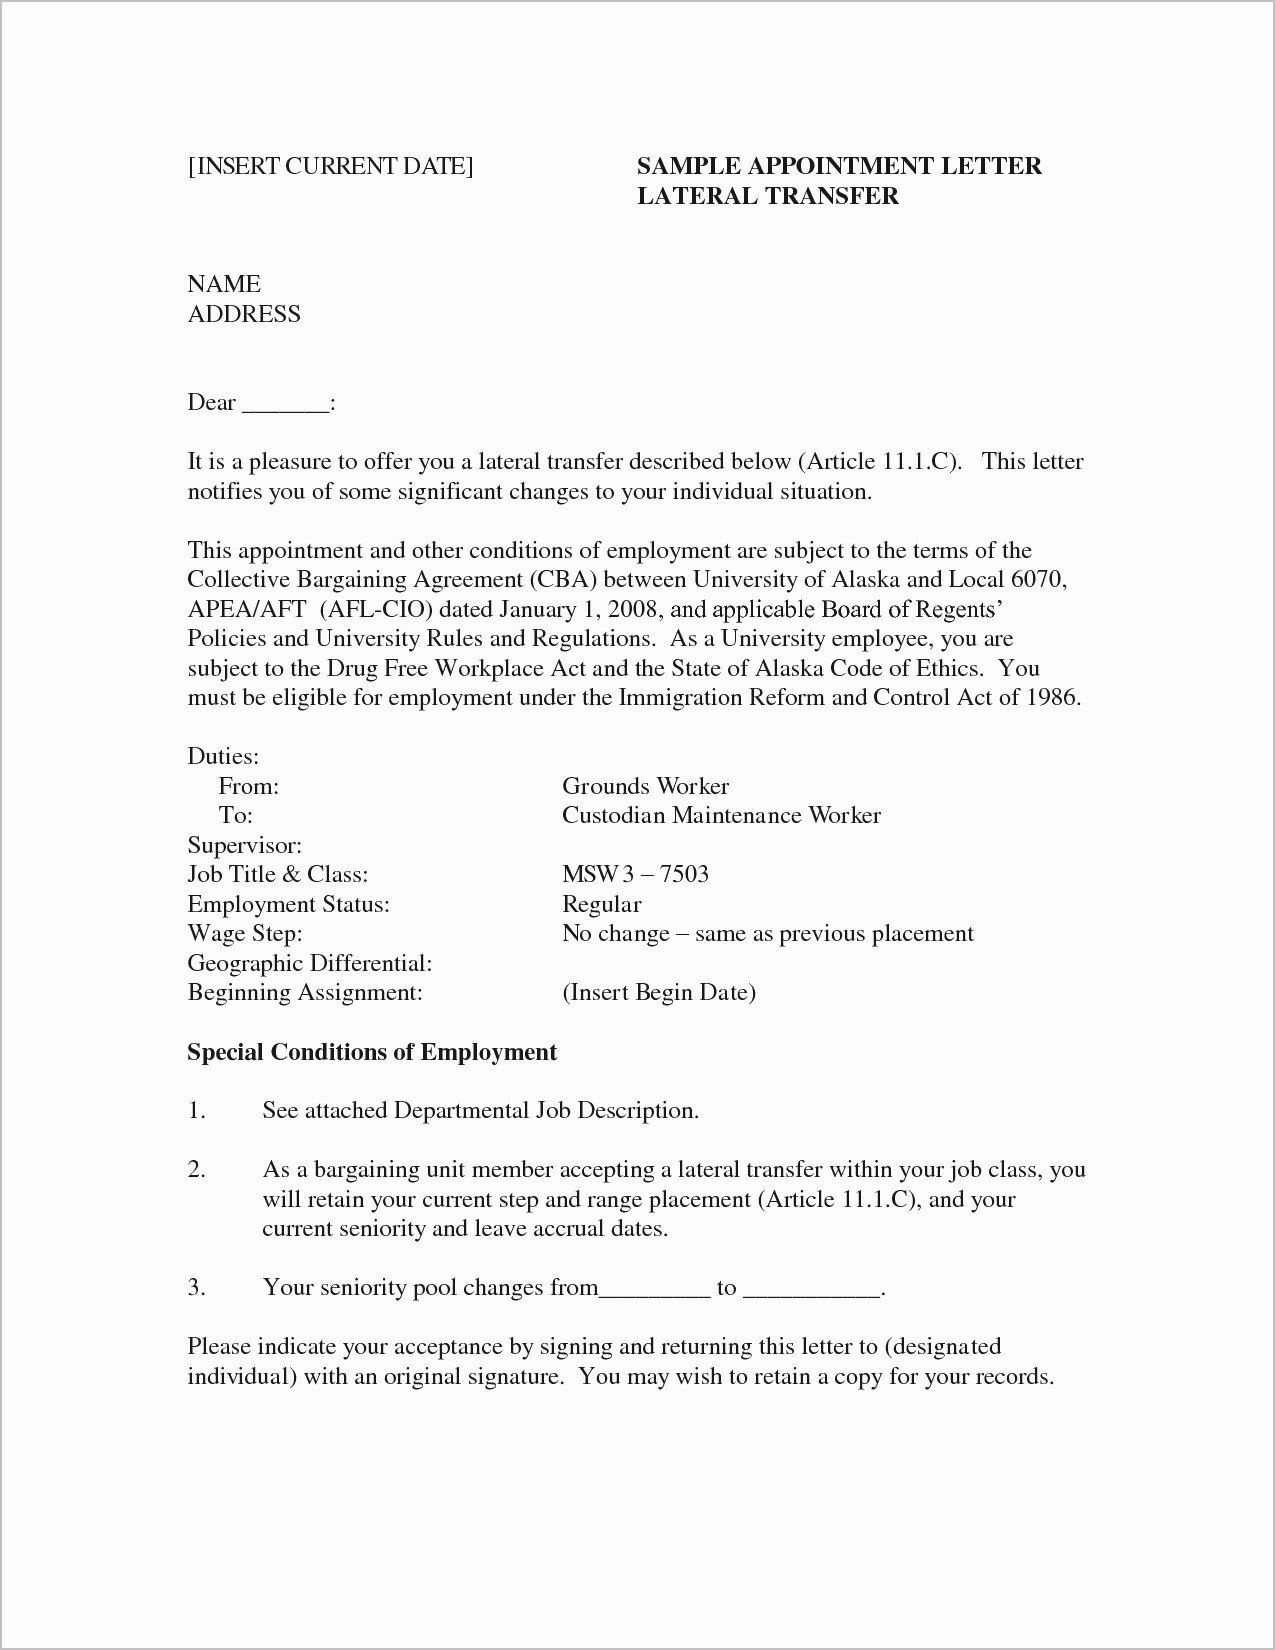 Personal Loan Template Letter - Lovely Letter format Bank Copy Loan Application Letter Sample to